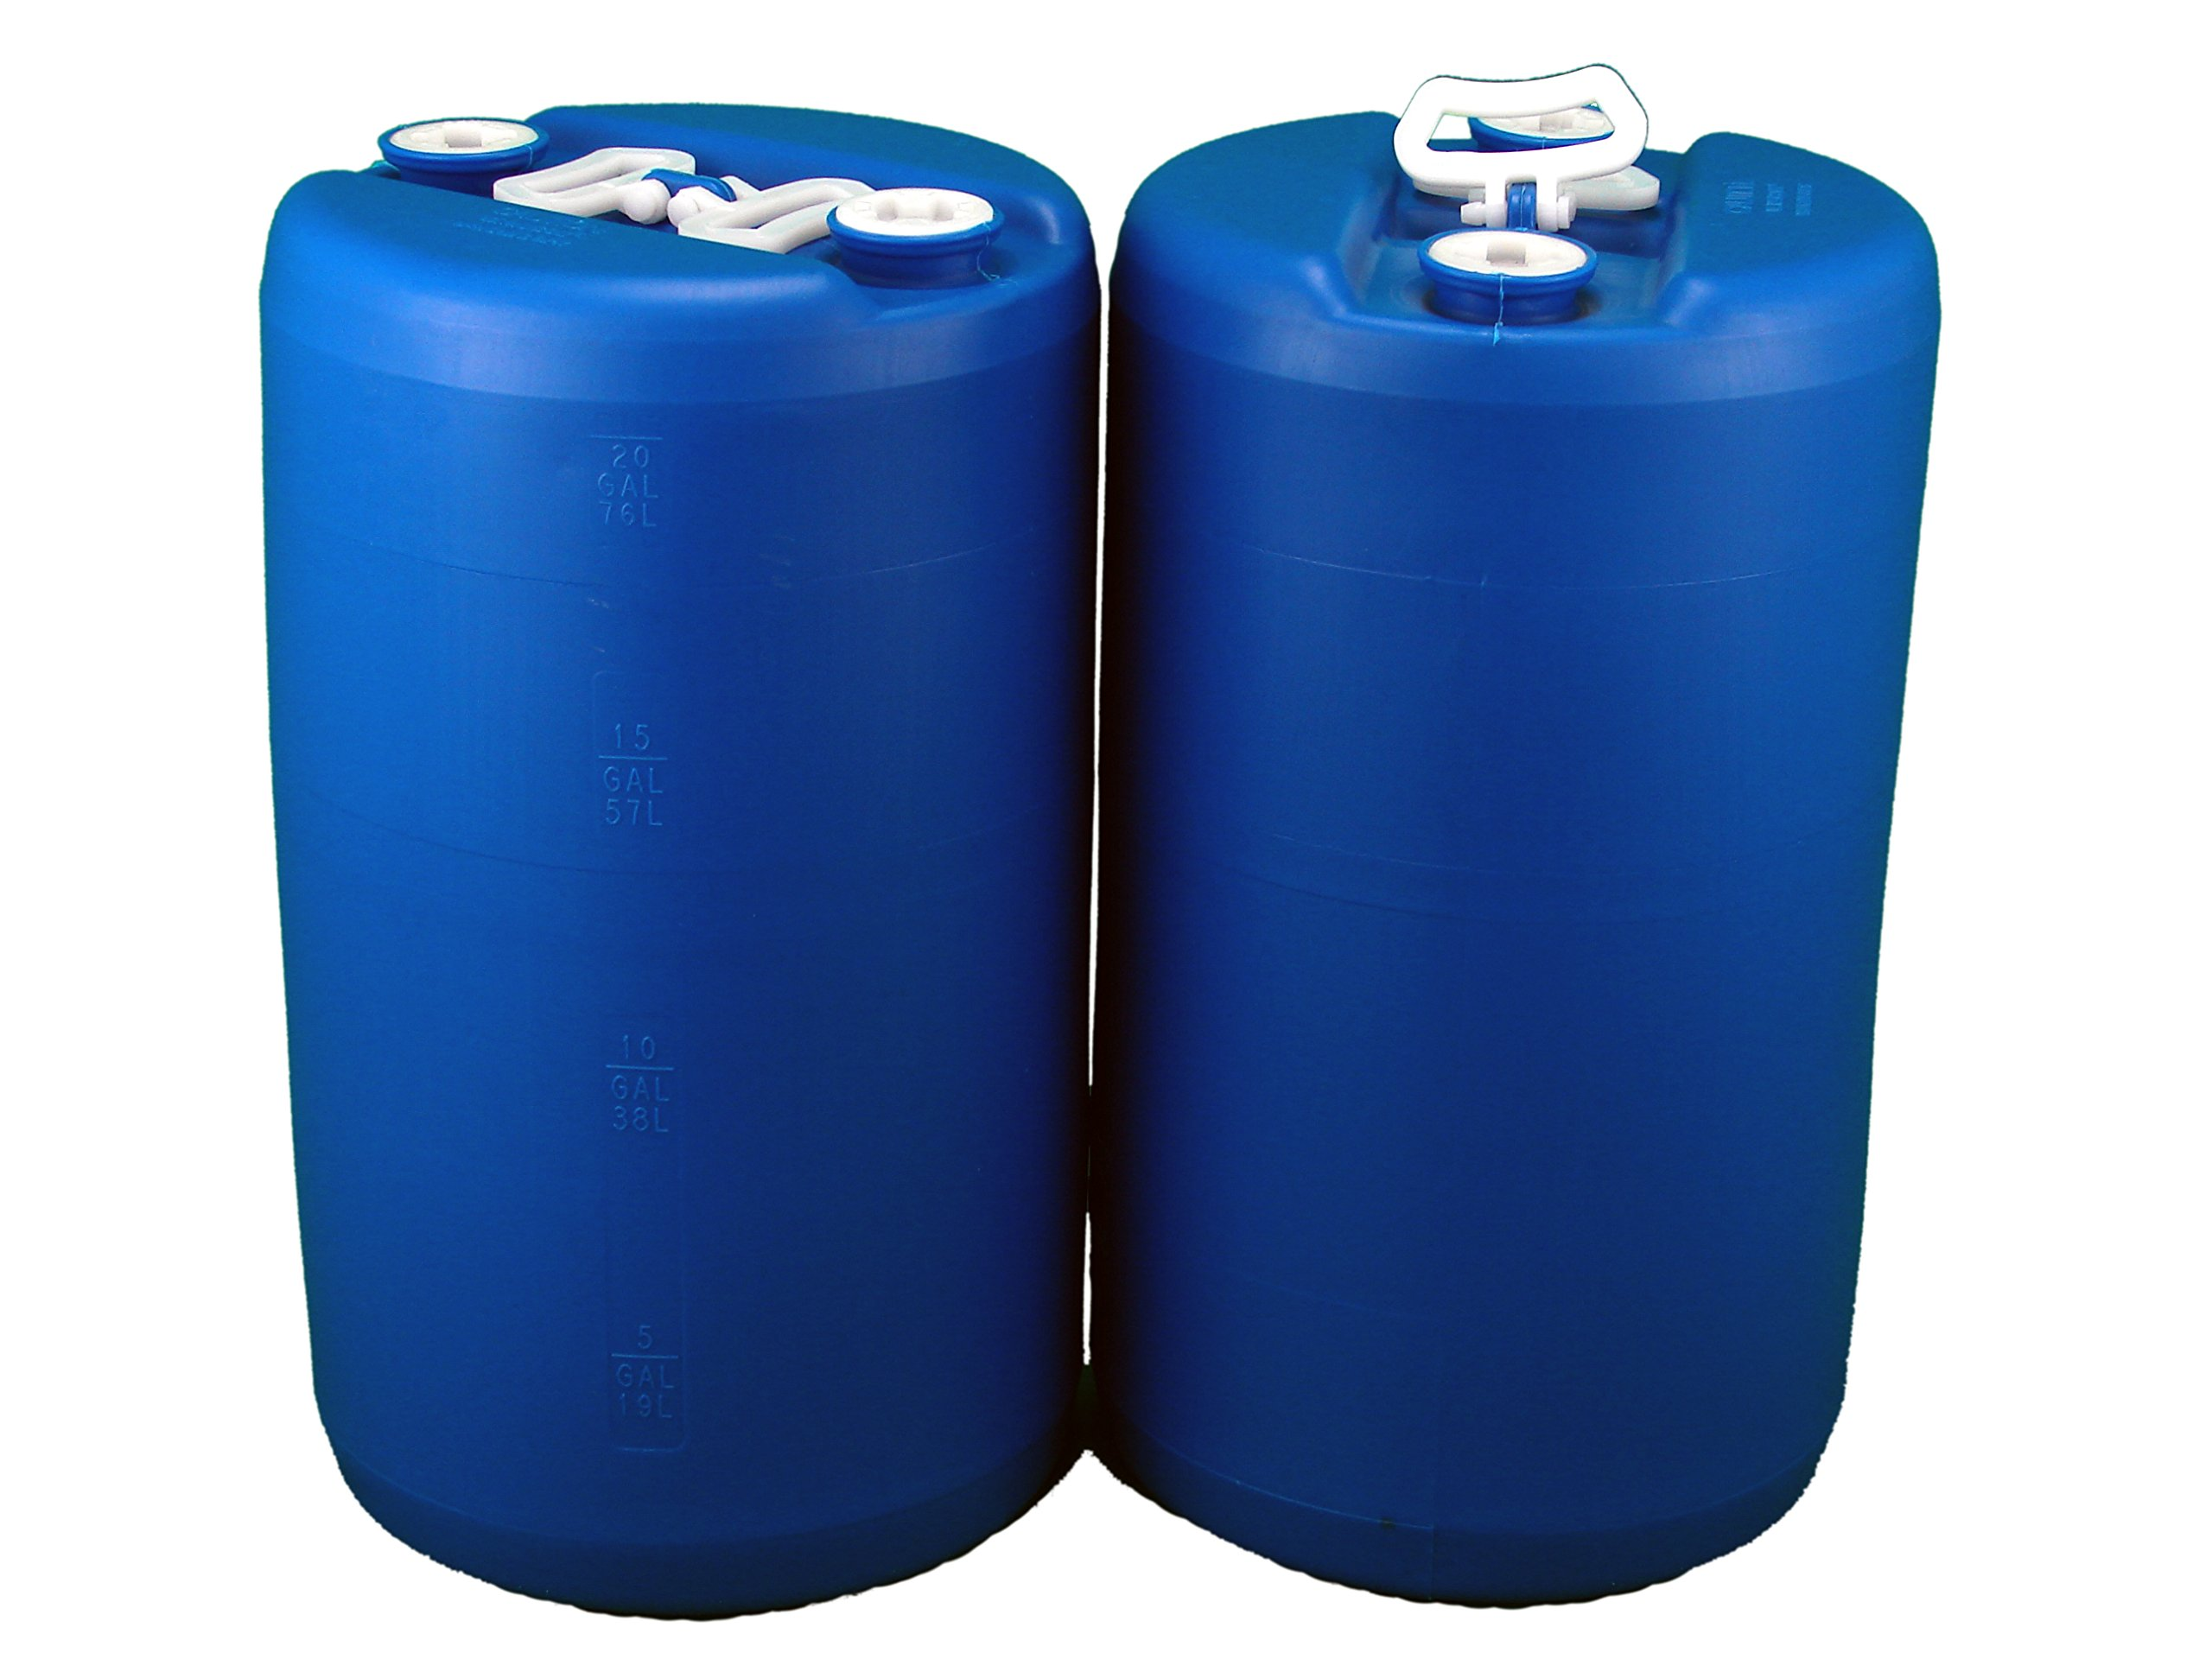 20 Gallon Emergency Water Storage Drum, 2 Pack, Blue - New! - Boxed! by GREIF